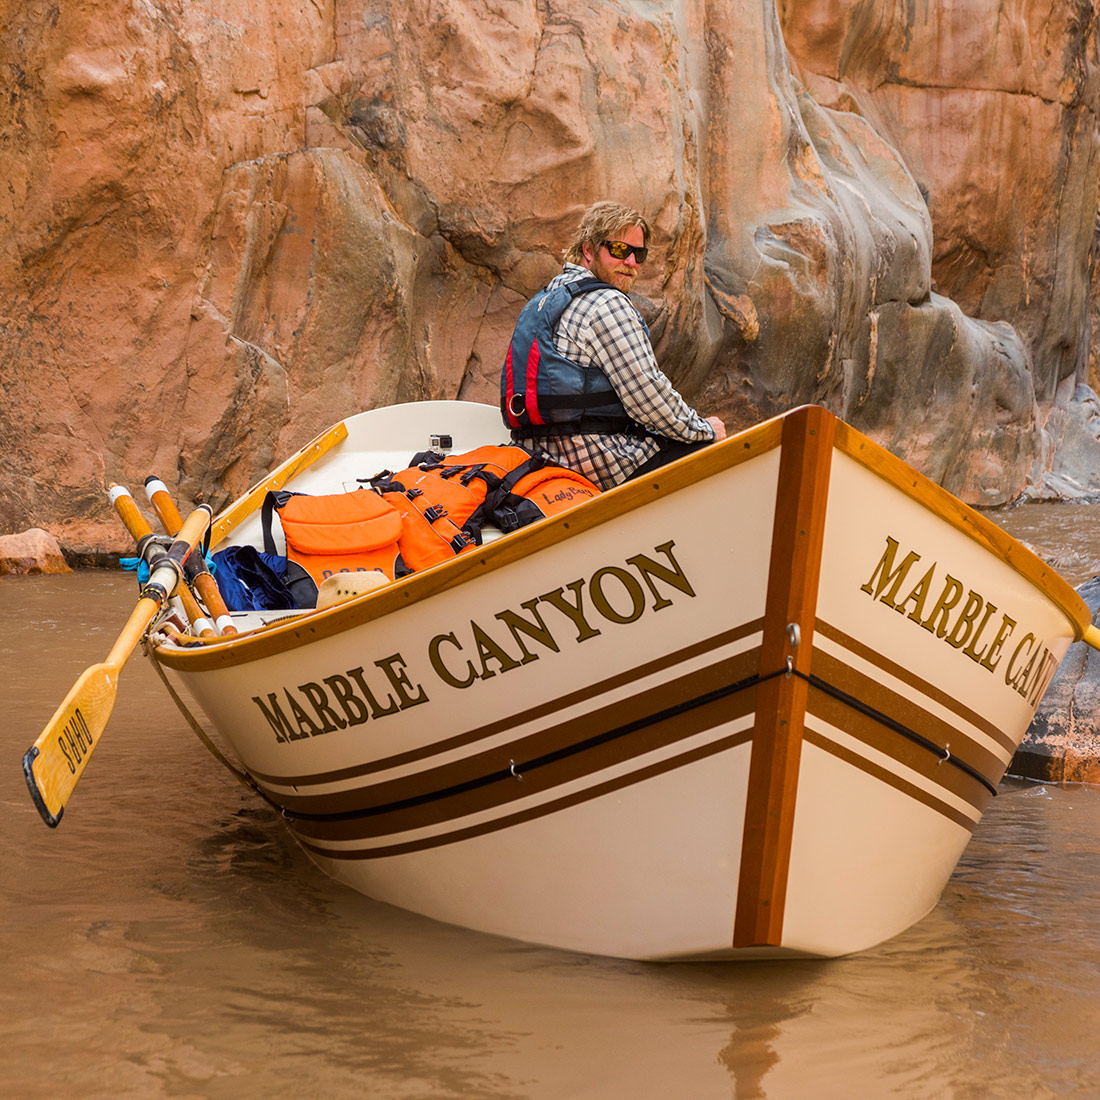 Marble Canyon Dory